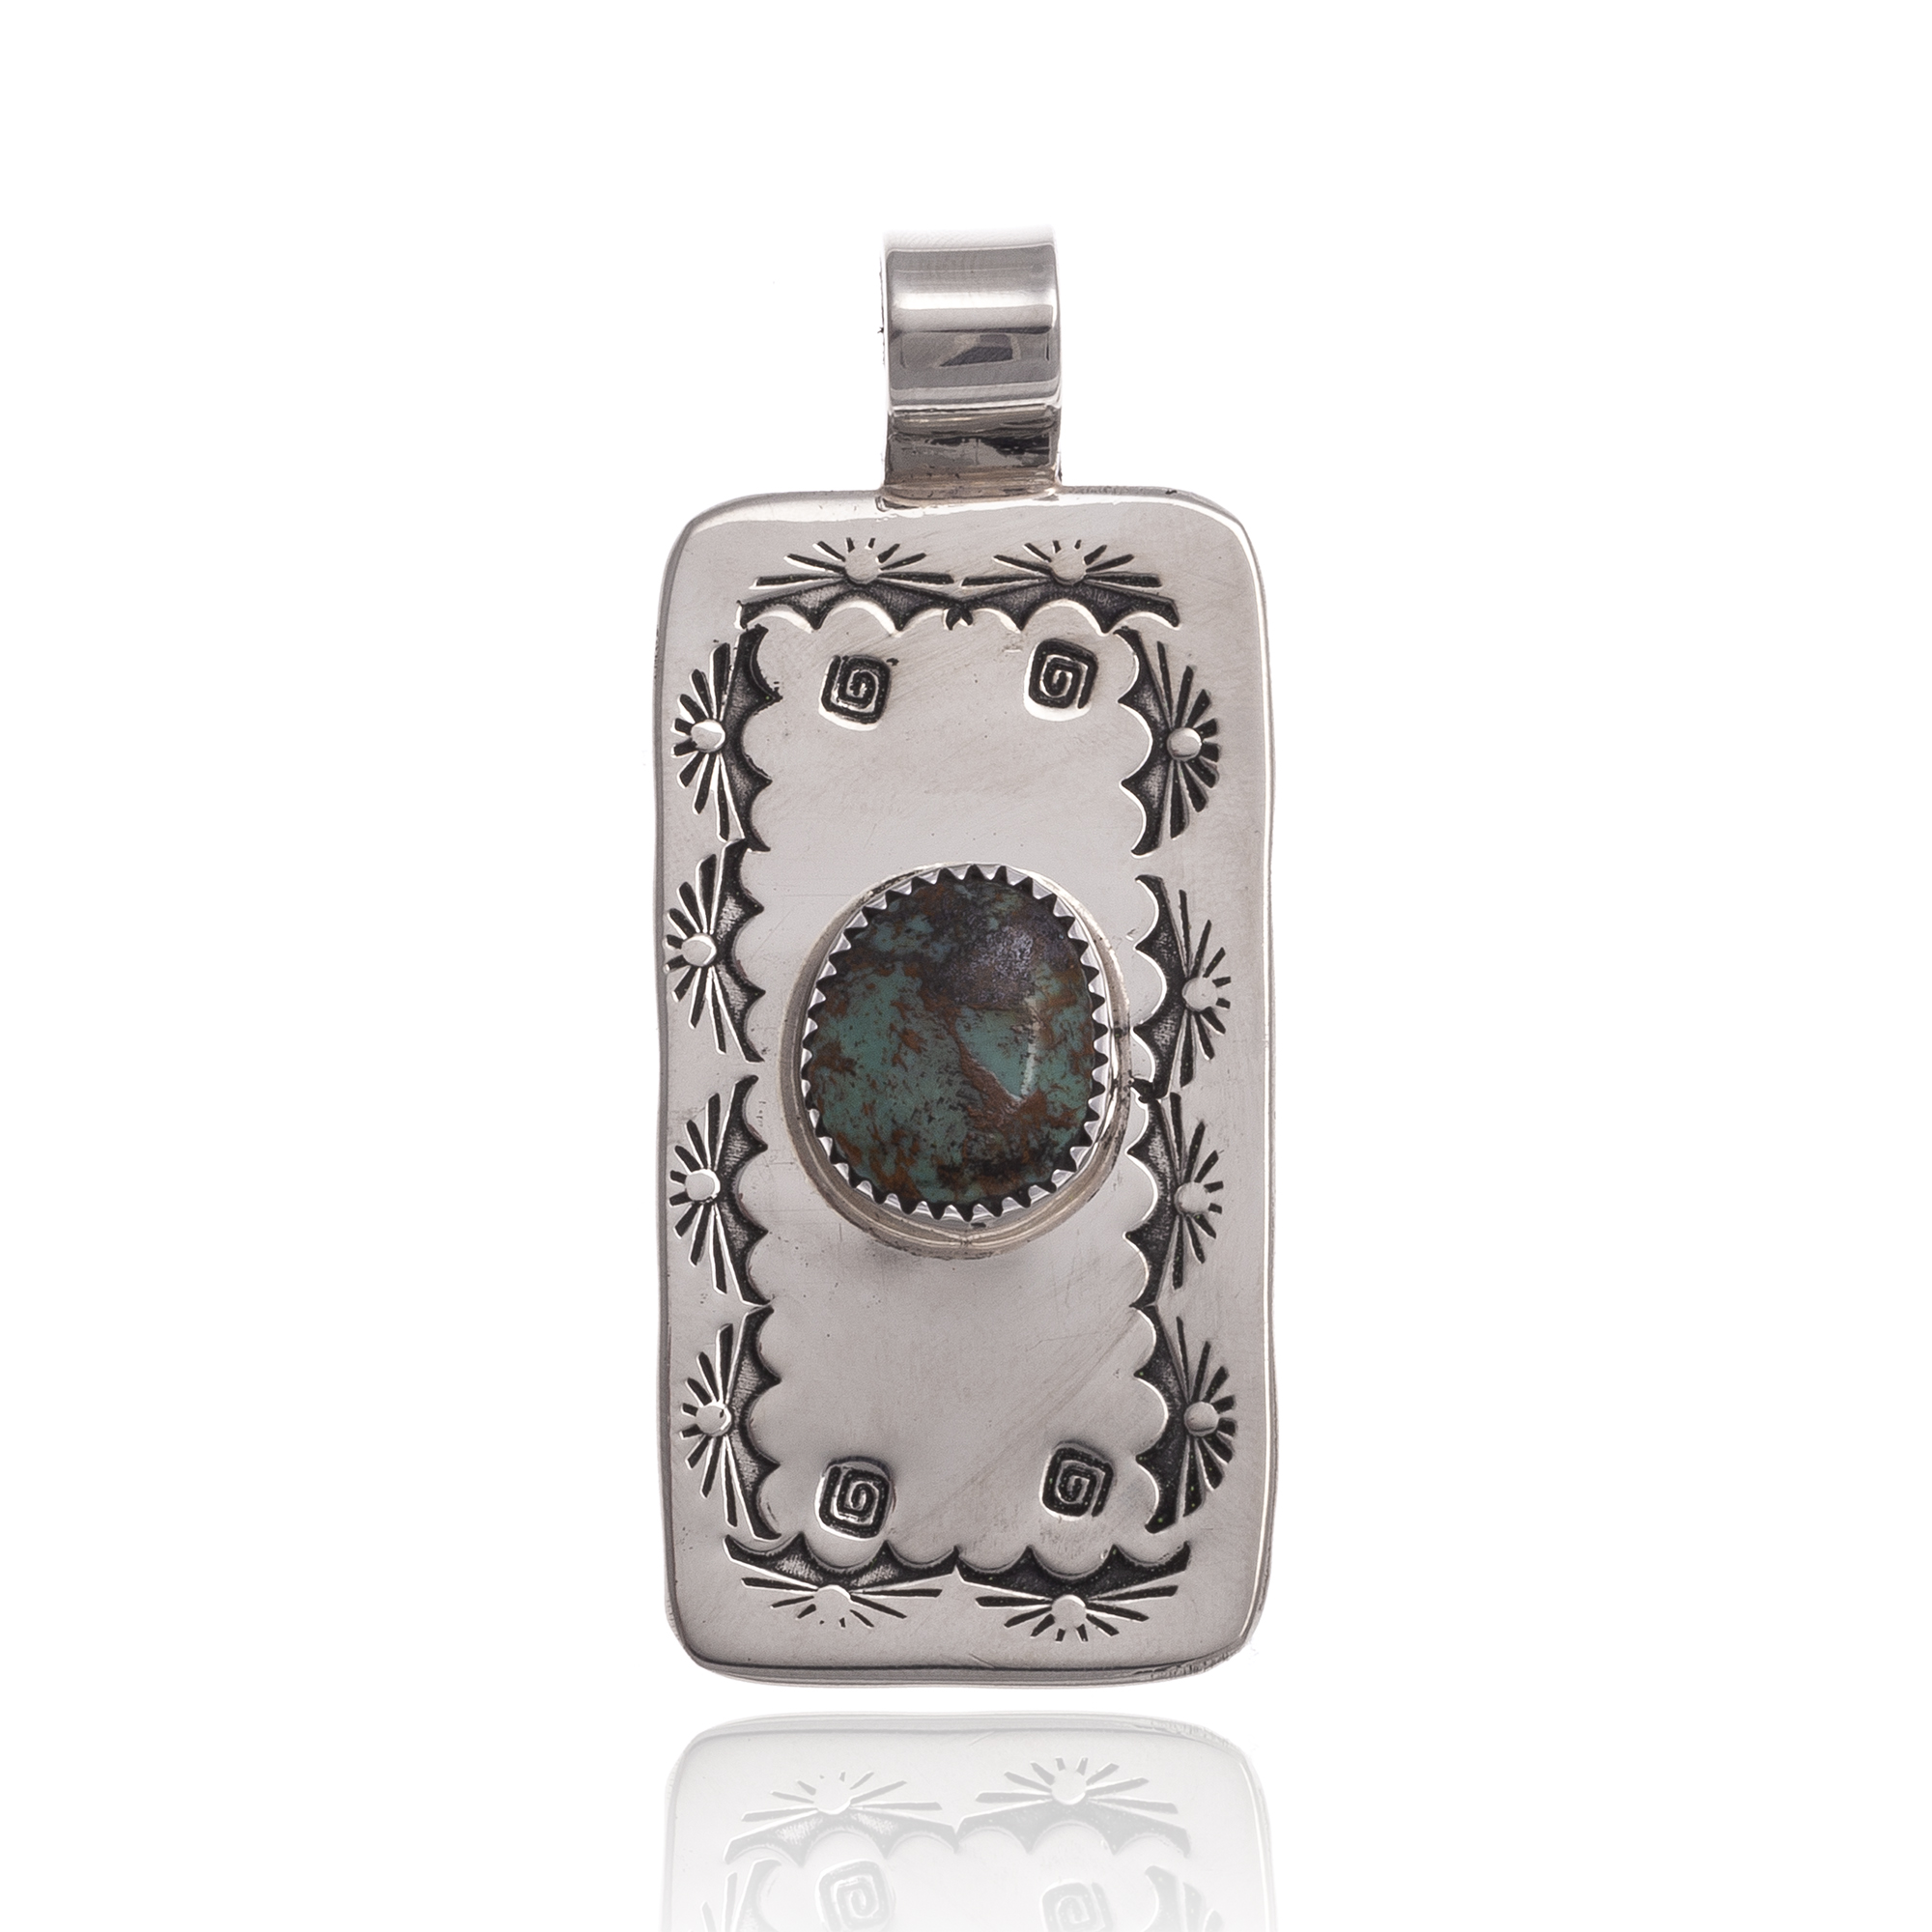 Natural Turquoise Nickel Certified Authentic Navajo Native American Handmade Pendant 12810-8 Pendants NB151224223307 12810-8 (by LomaSiiva)